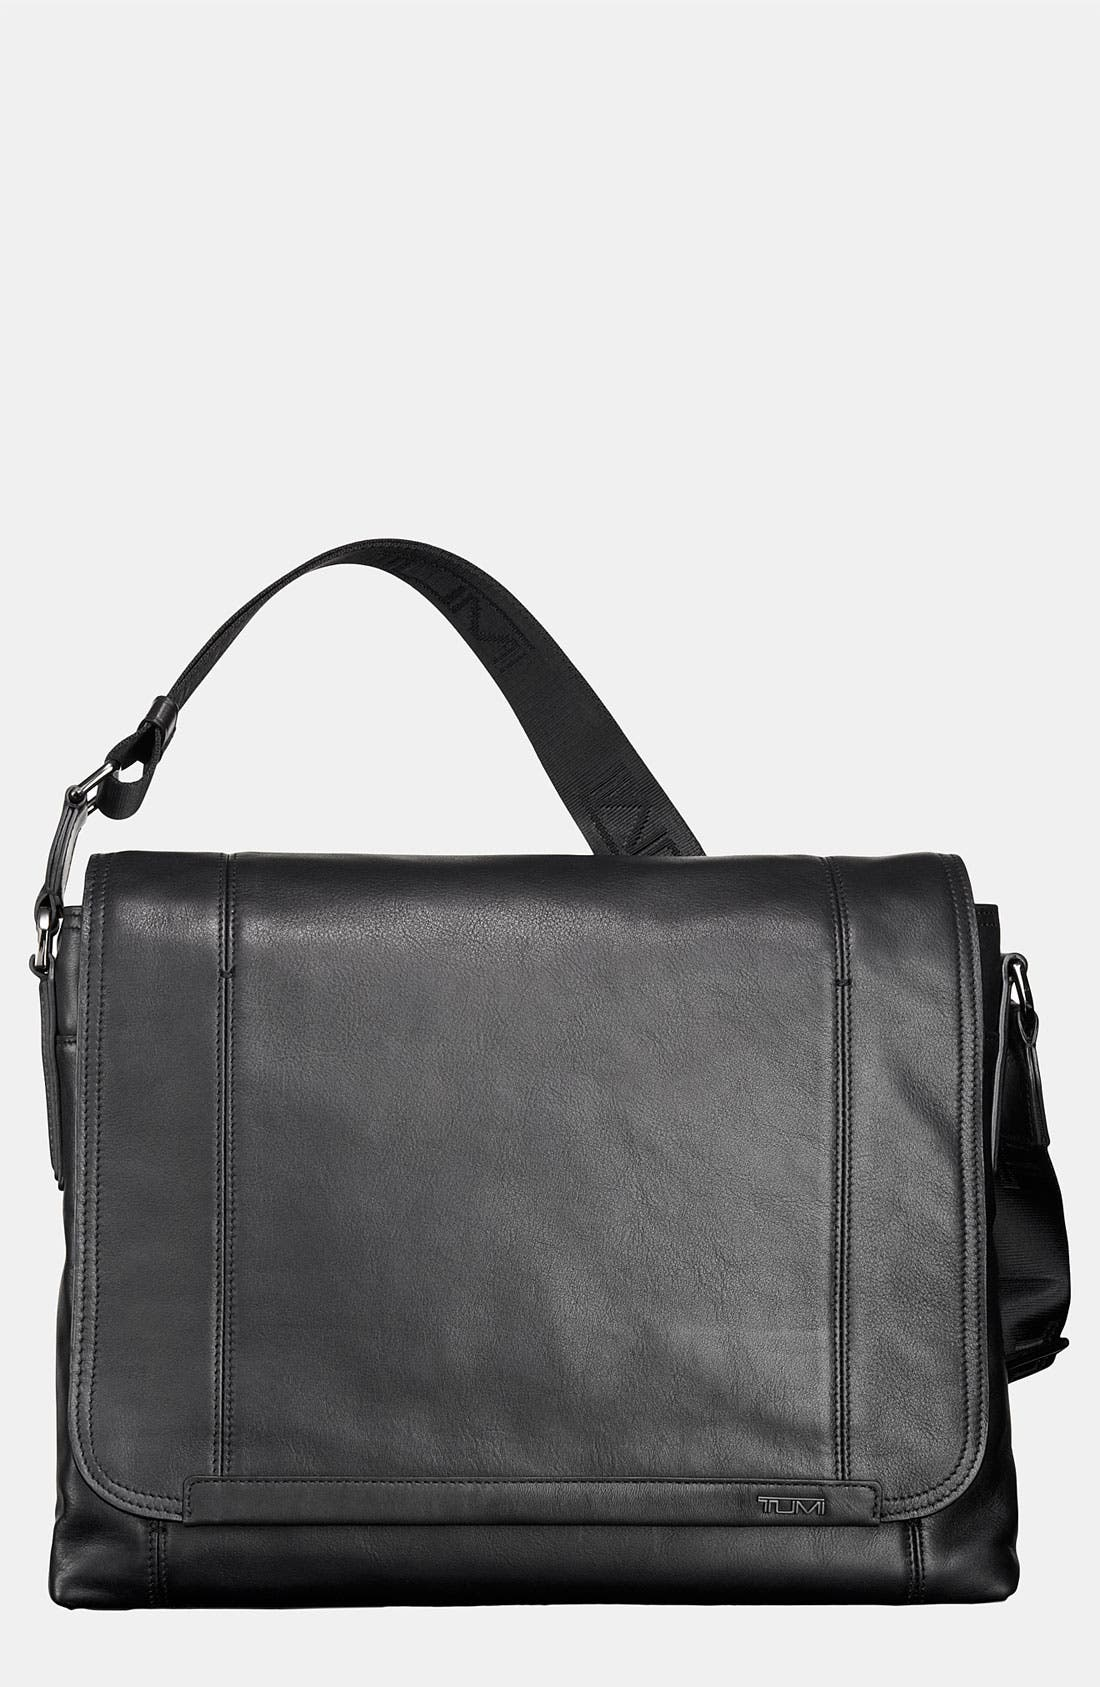 Alternate Image 1 Selected - Tumi 'Centro - Verona' Flap Messenger Bag